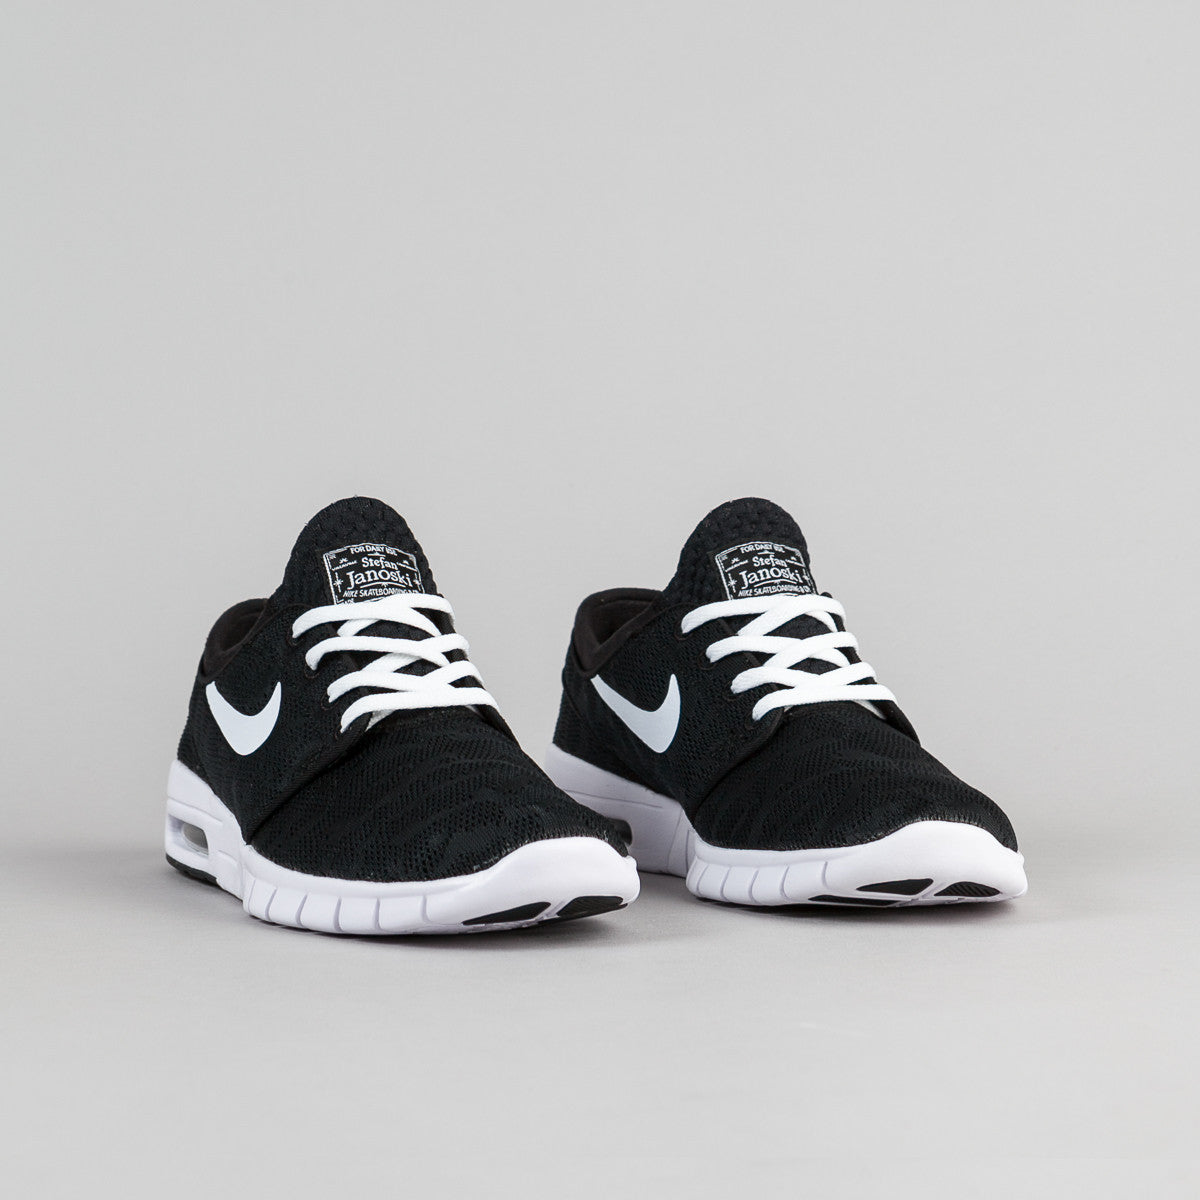 nike sb stefan janoski max black white flatspot. Black Bedroom Furniture Sets. Home Design Ideas